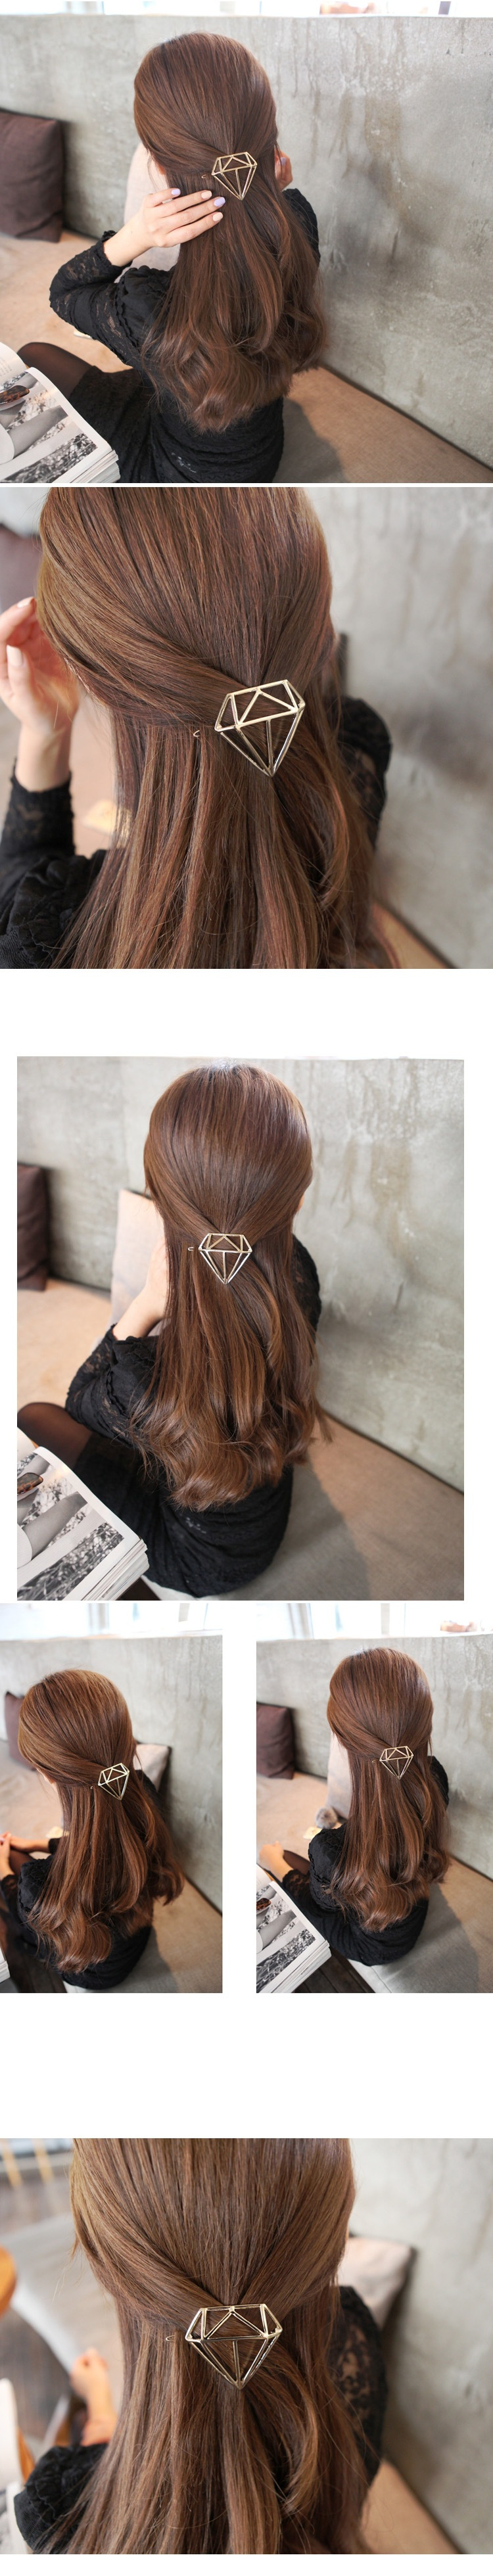 The New Hairpin Princess Crown Tiara Girl Hair Accessories Hollow Hairpin Hairpin Jewelry Women Members